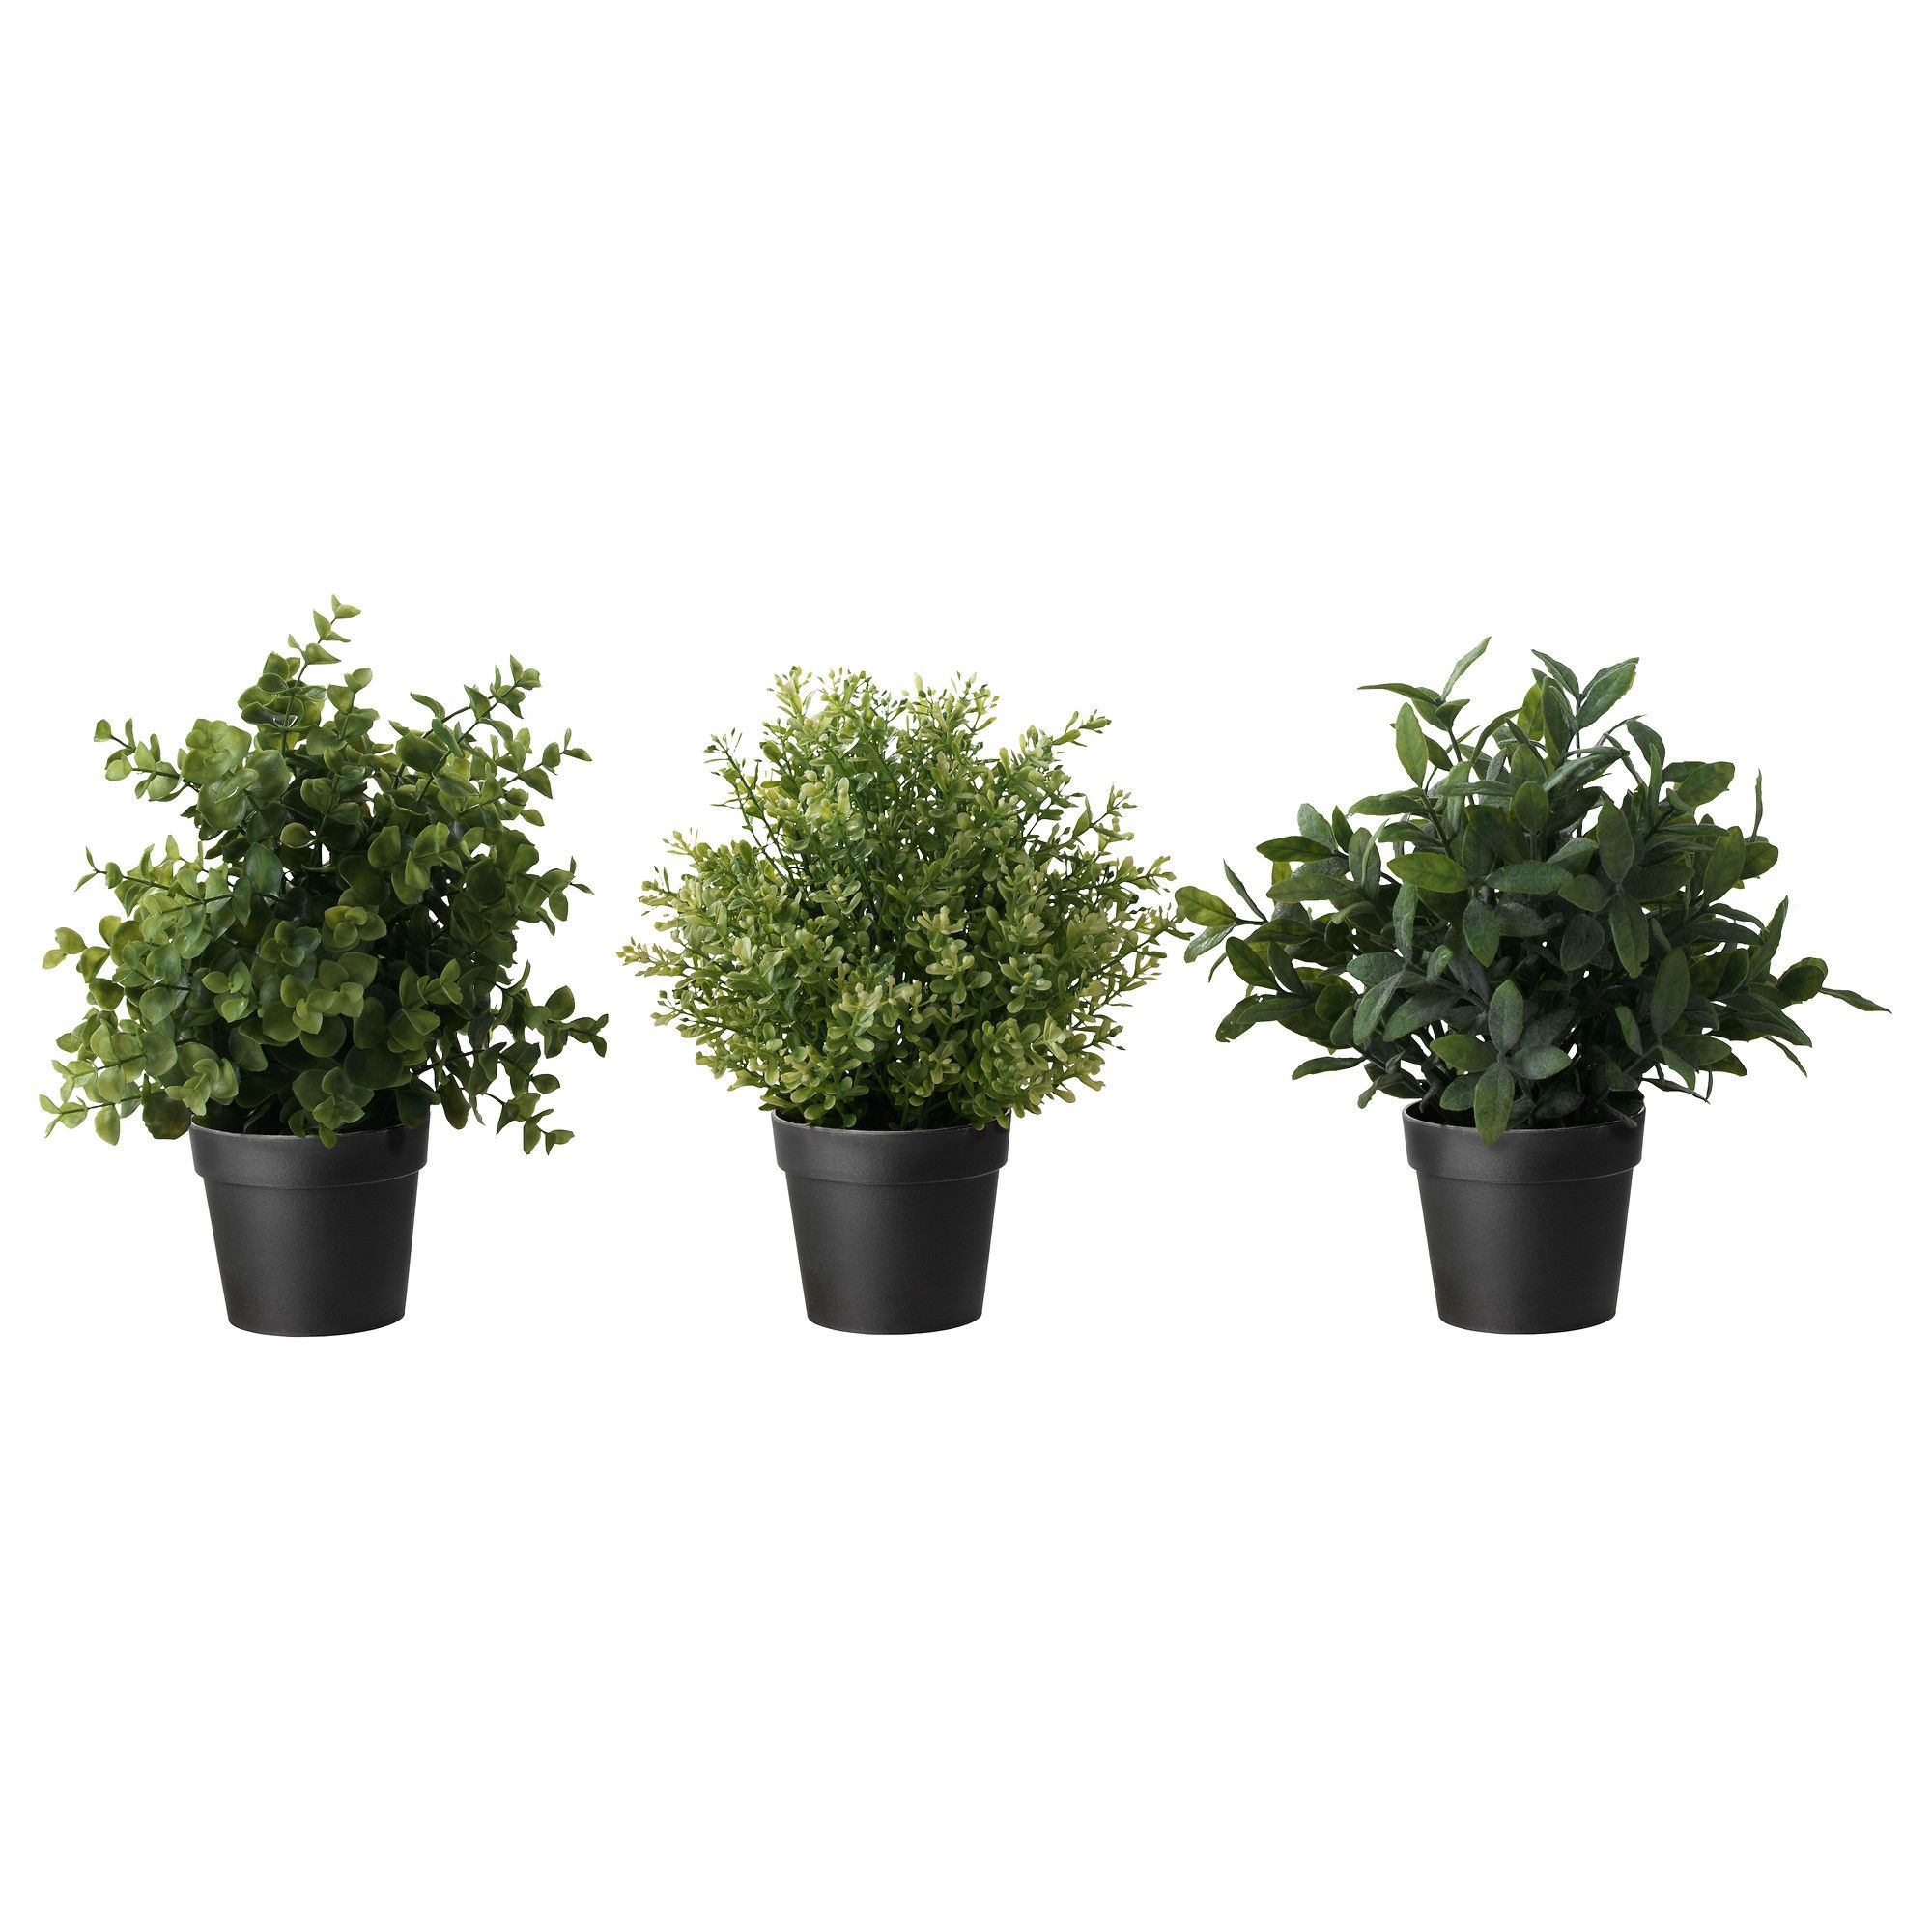 Fresh Home Furnishing Ideas And Affordable Furniture Artificial Potted Plants Ikea Plants Small Artificial Plants